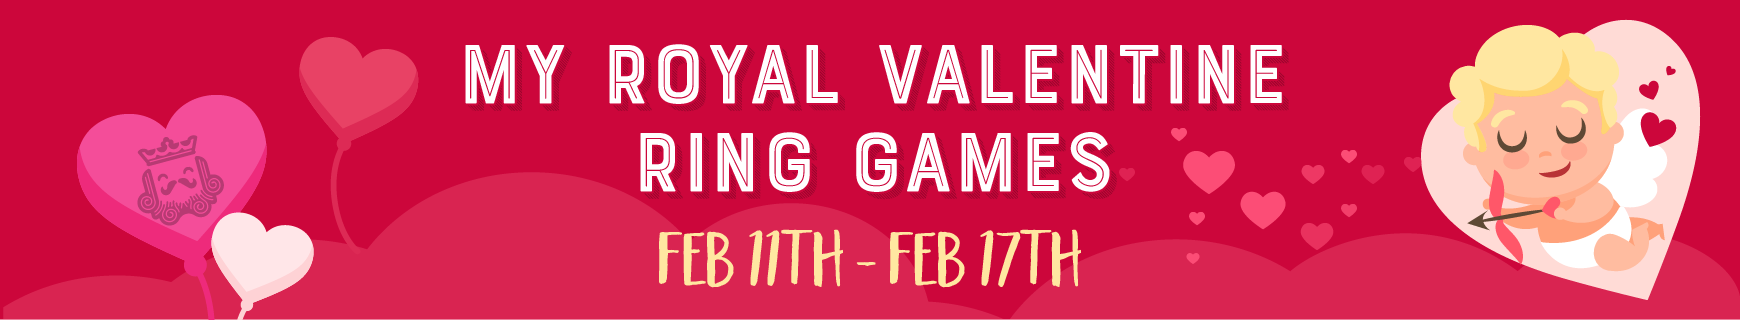 My royal valentine ring games %28870 x 160%29 2x